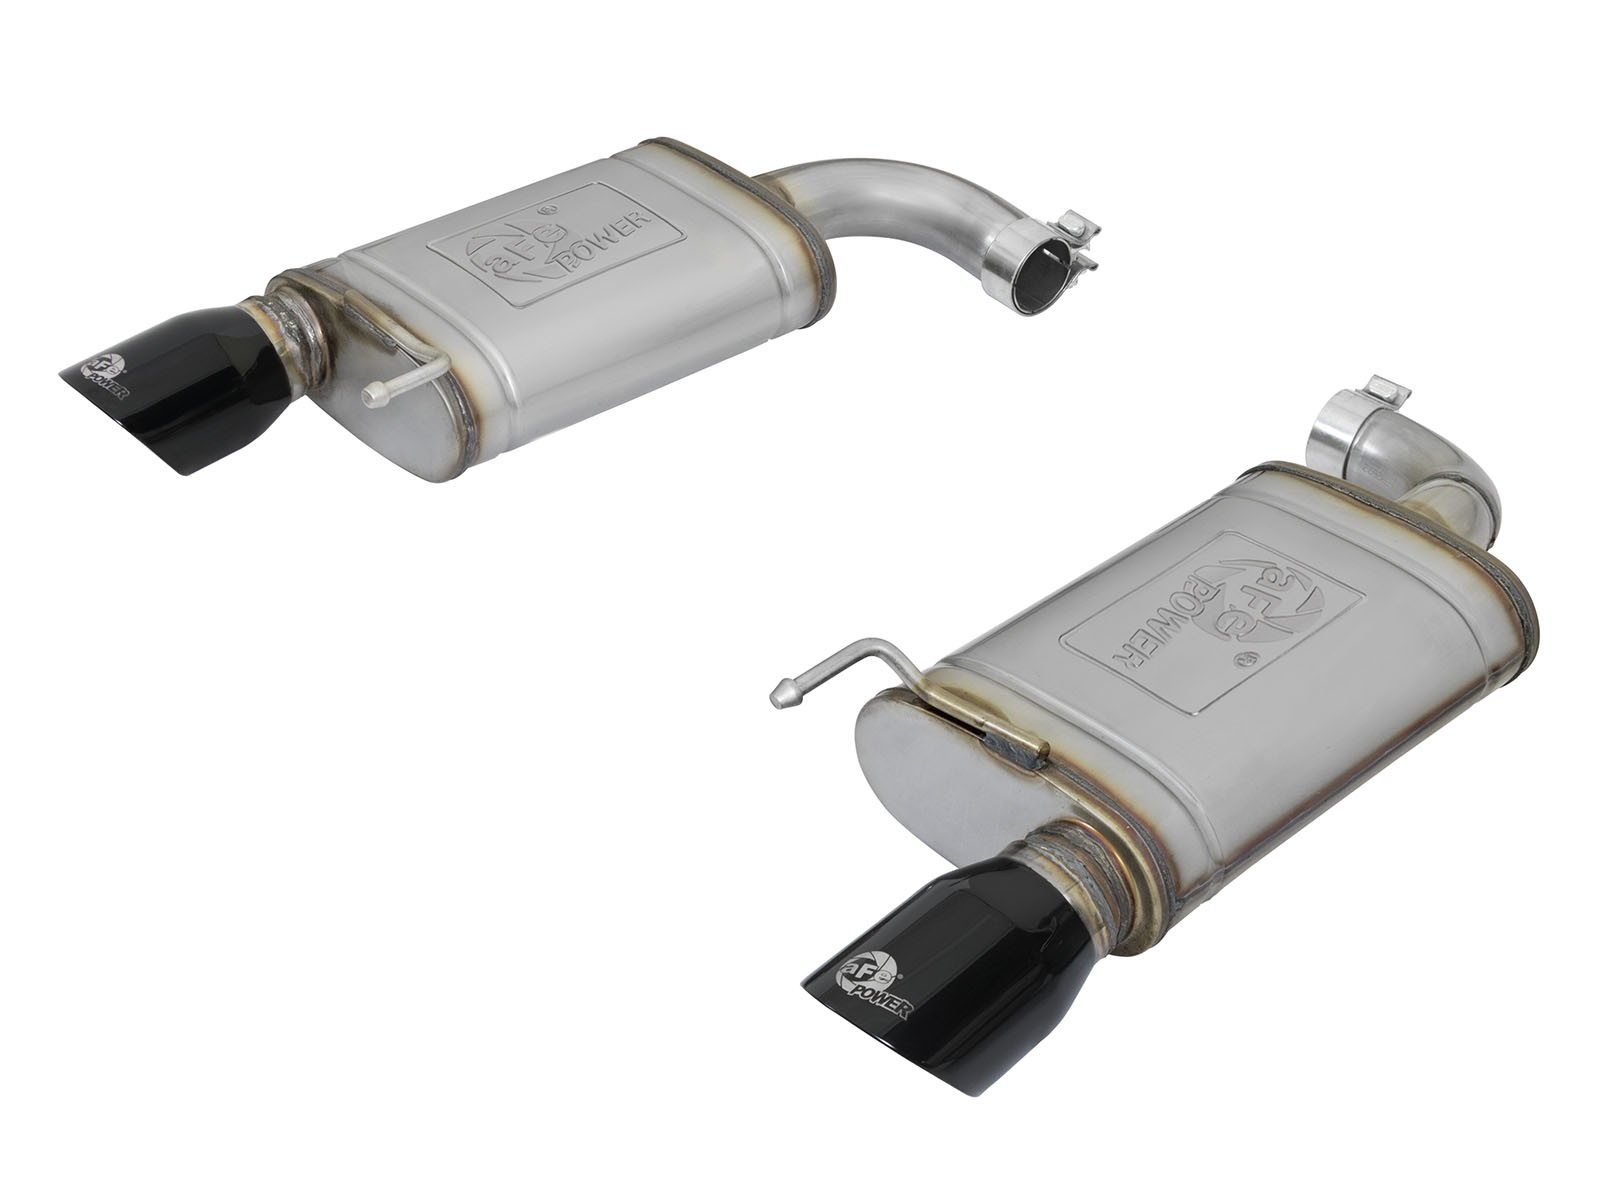 "aFe POWER 49-43085-B MACH Force-Xp 2-1/2"" 409 Stainless Steel Axle-Back Exhaust System"